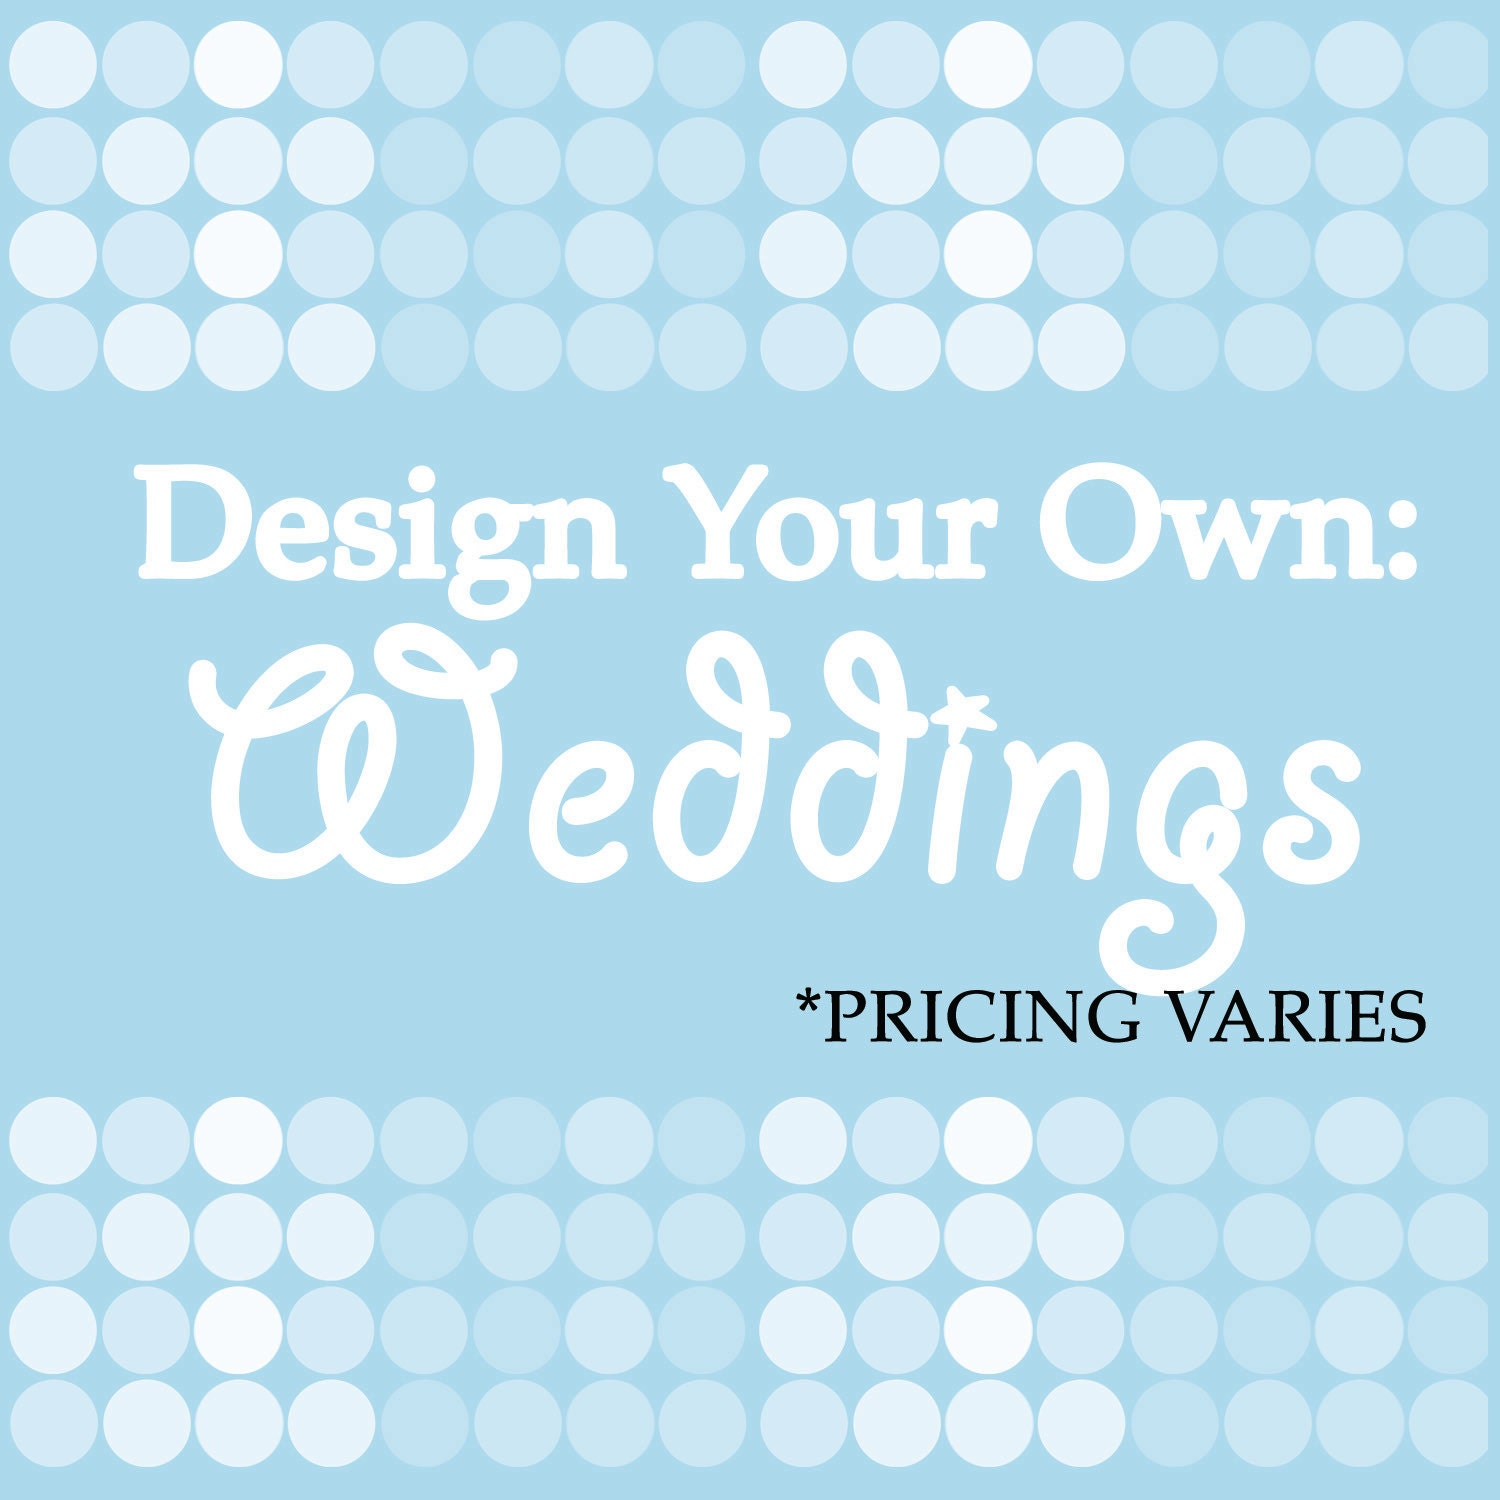 Design Your Own Photo Cake : Items similar to DESIGN YOUR OWN: Wedding Cake Toppers on Etsy